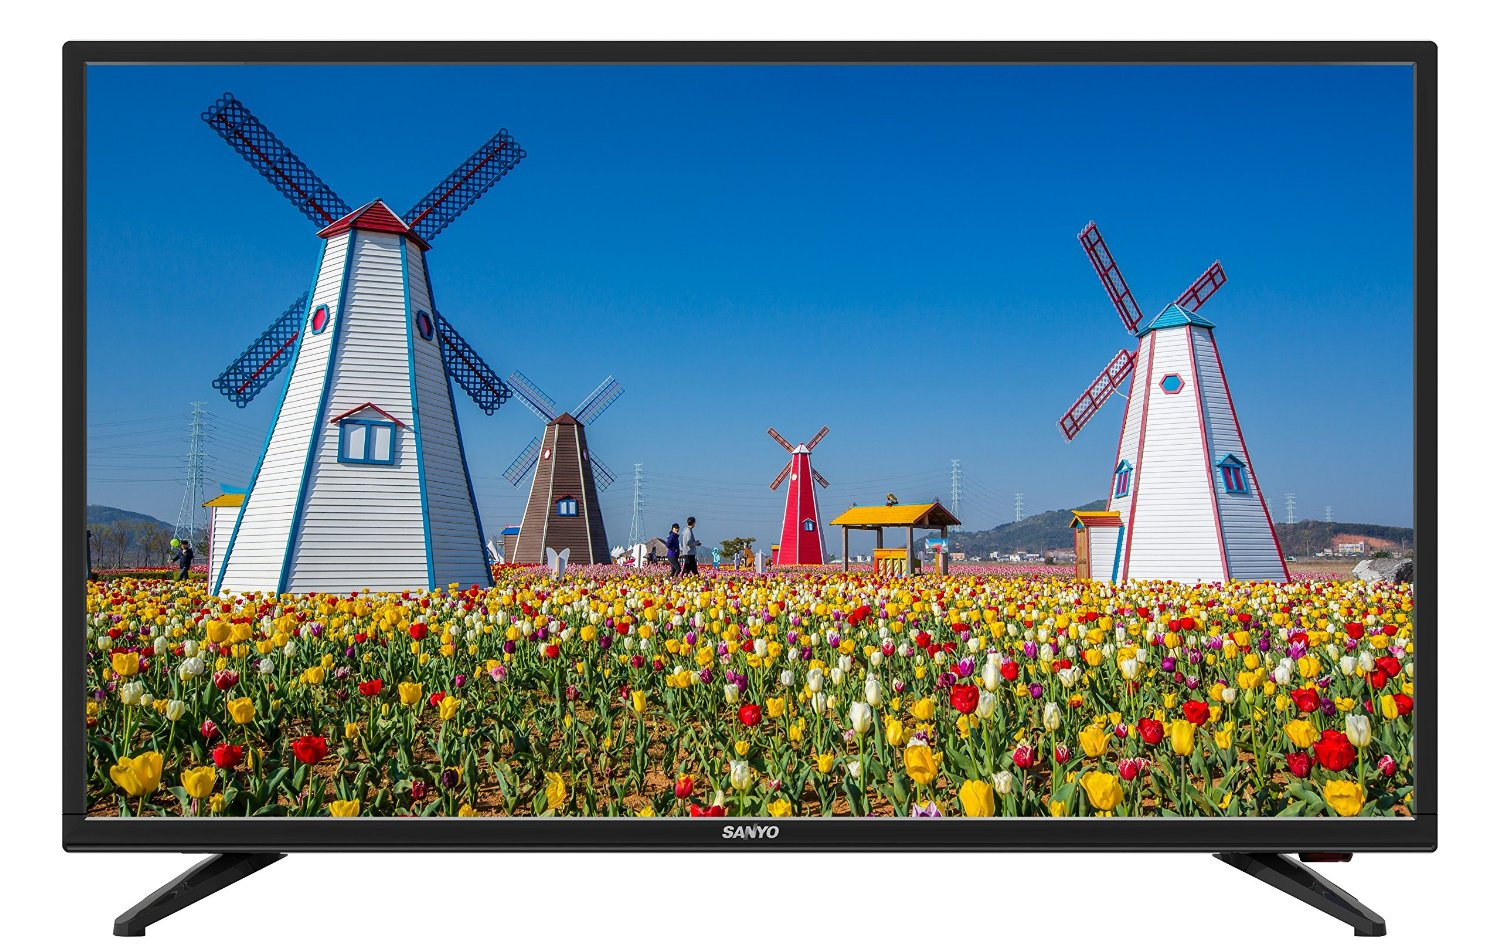 Sanyo 32 Inches HD Ready LED TV (XT 32S7000H) Price in India ...